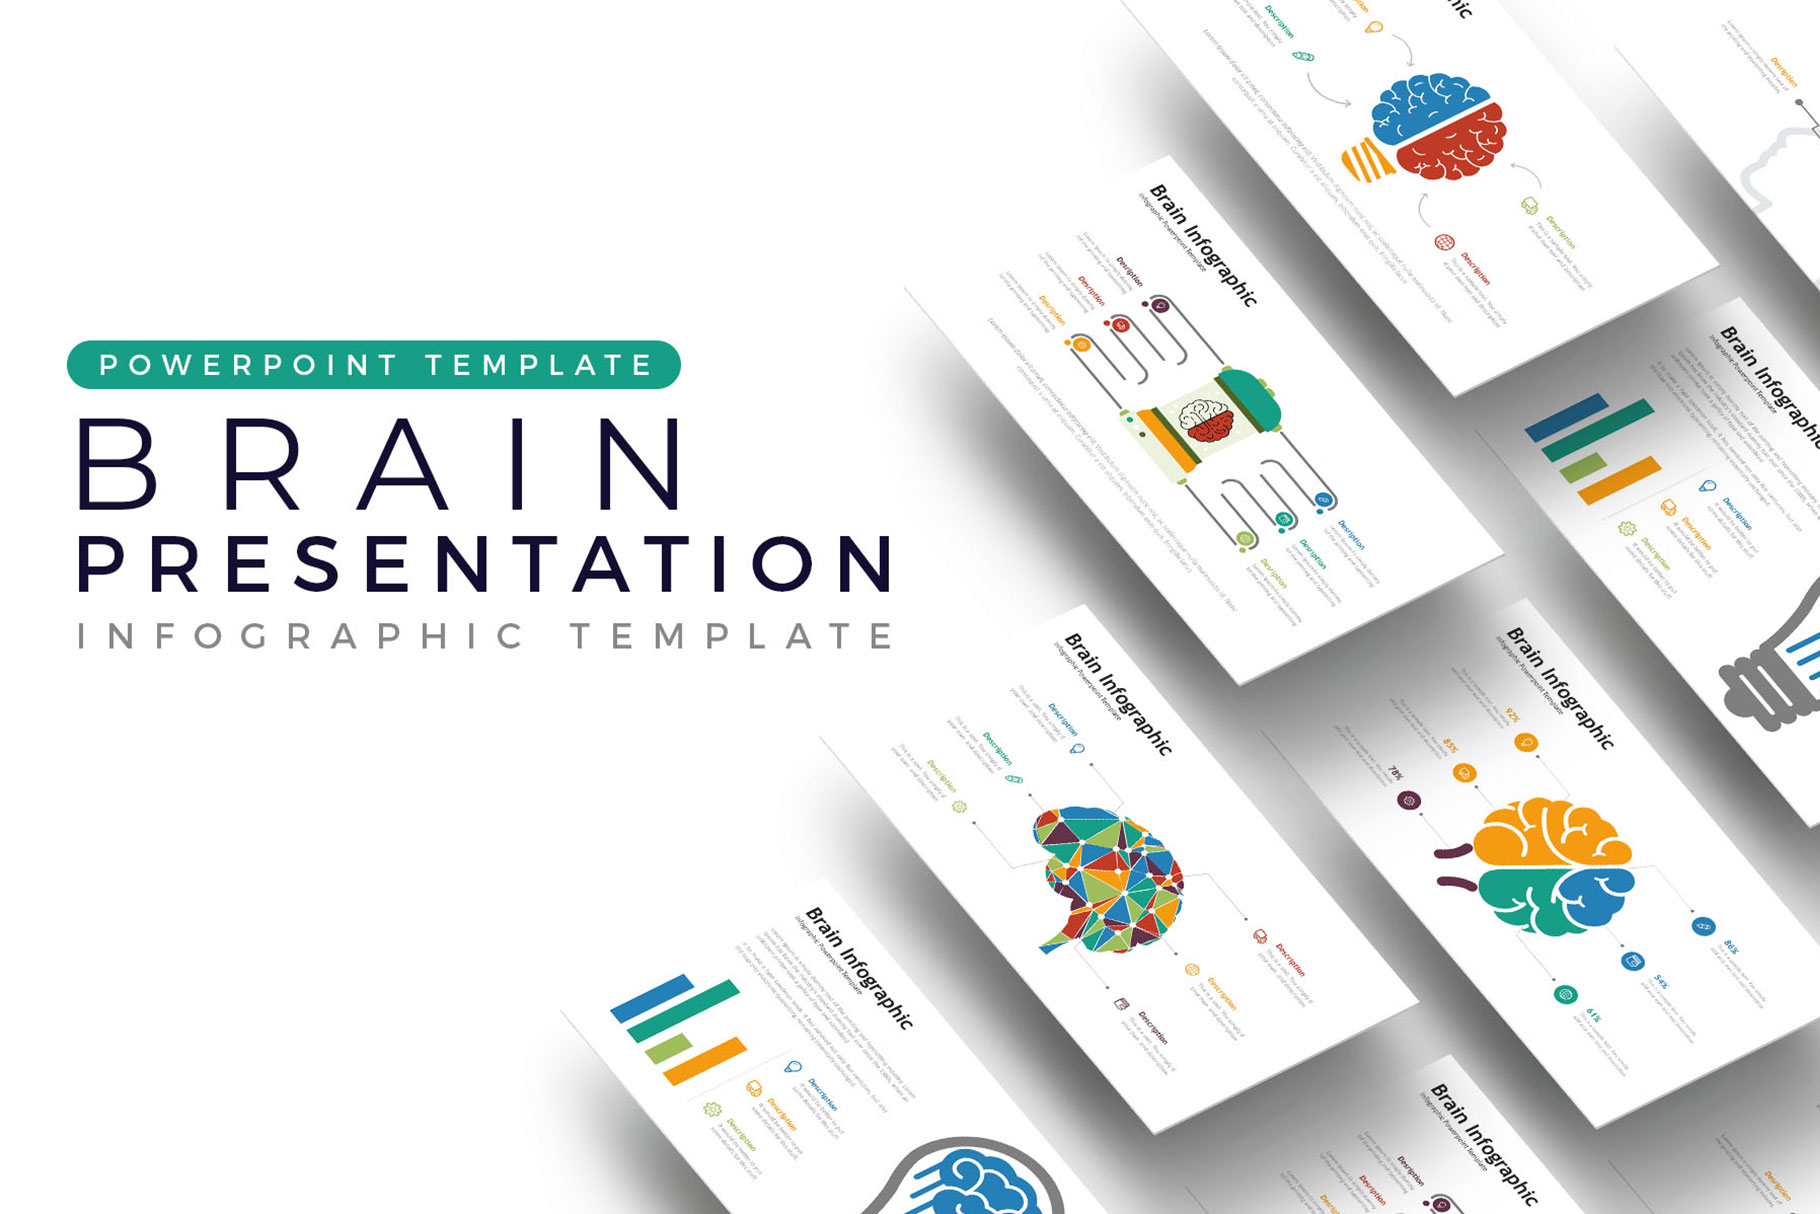 Brain Presentation - Infographic Template example image 1